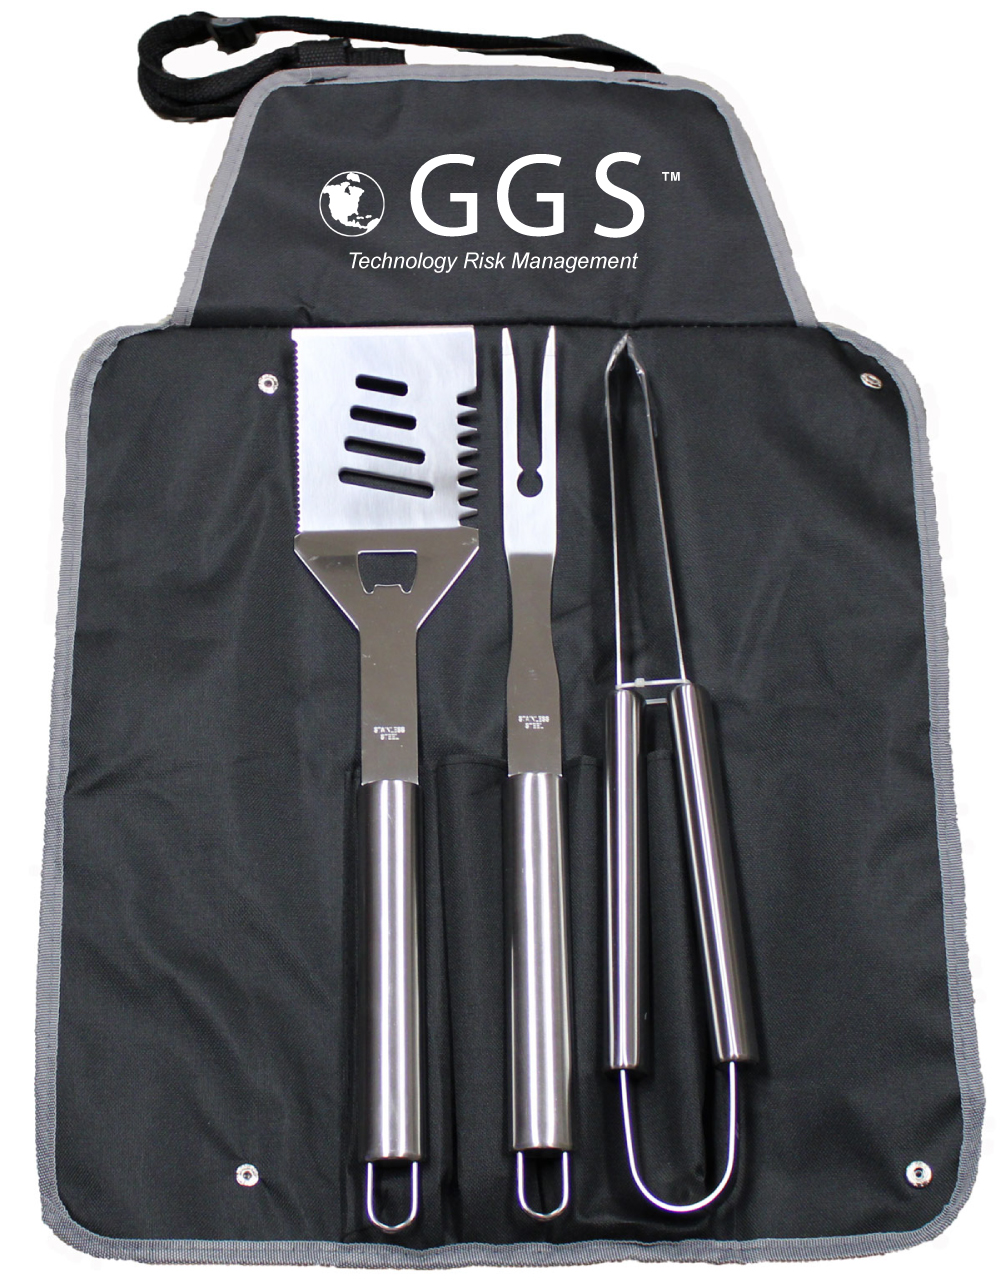 4 Piece BBQ Set with Stainless Steel Tools and Apron